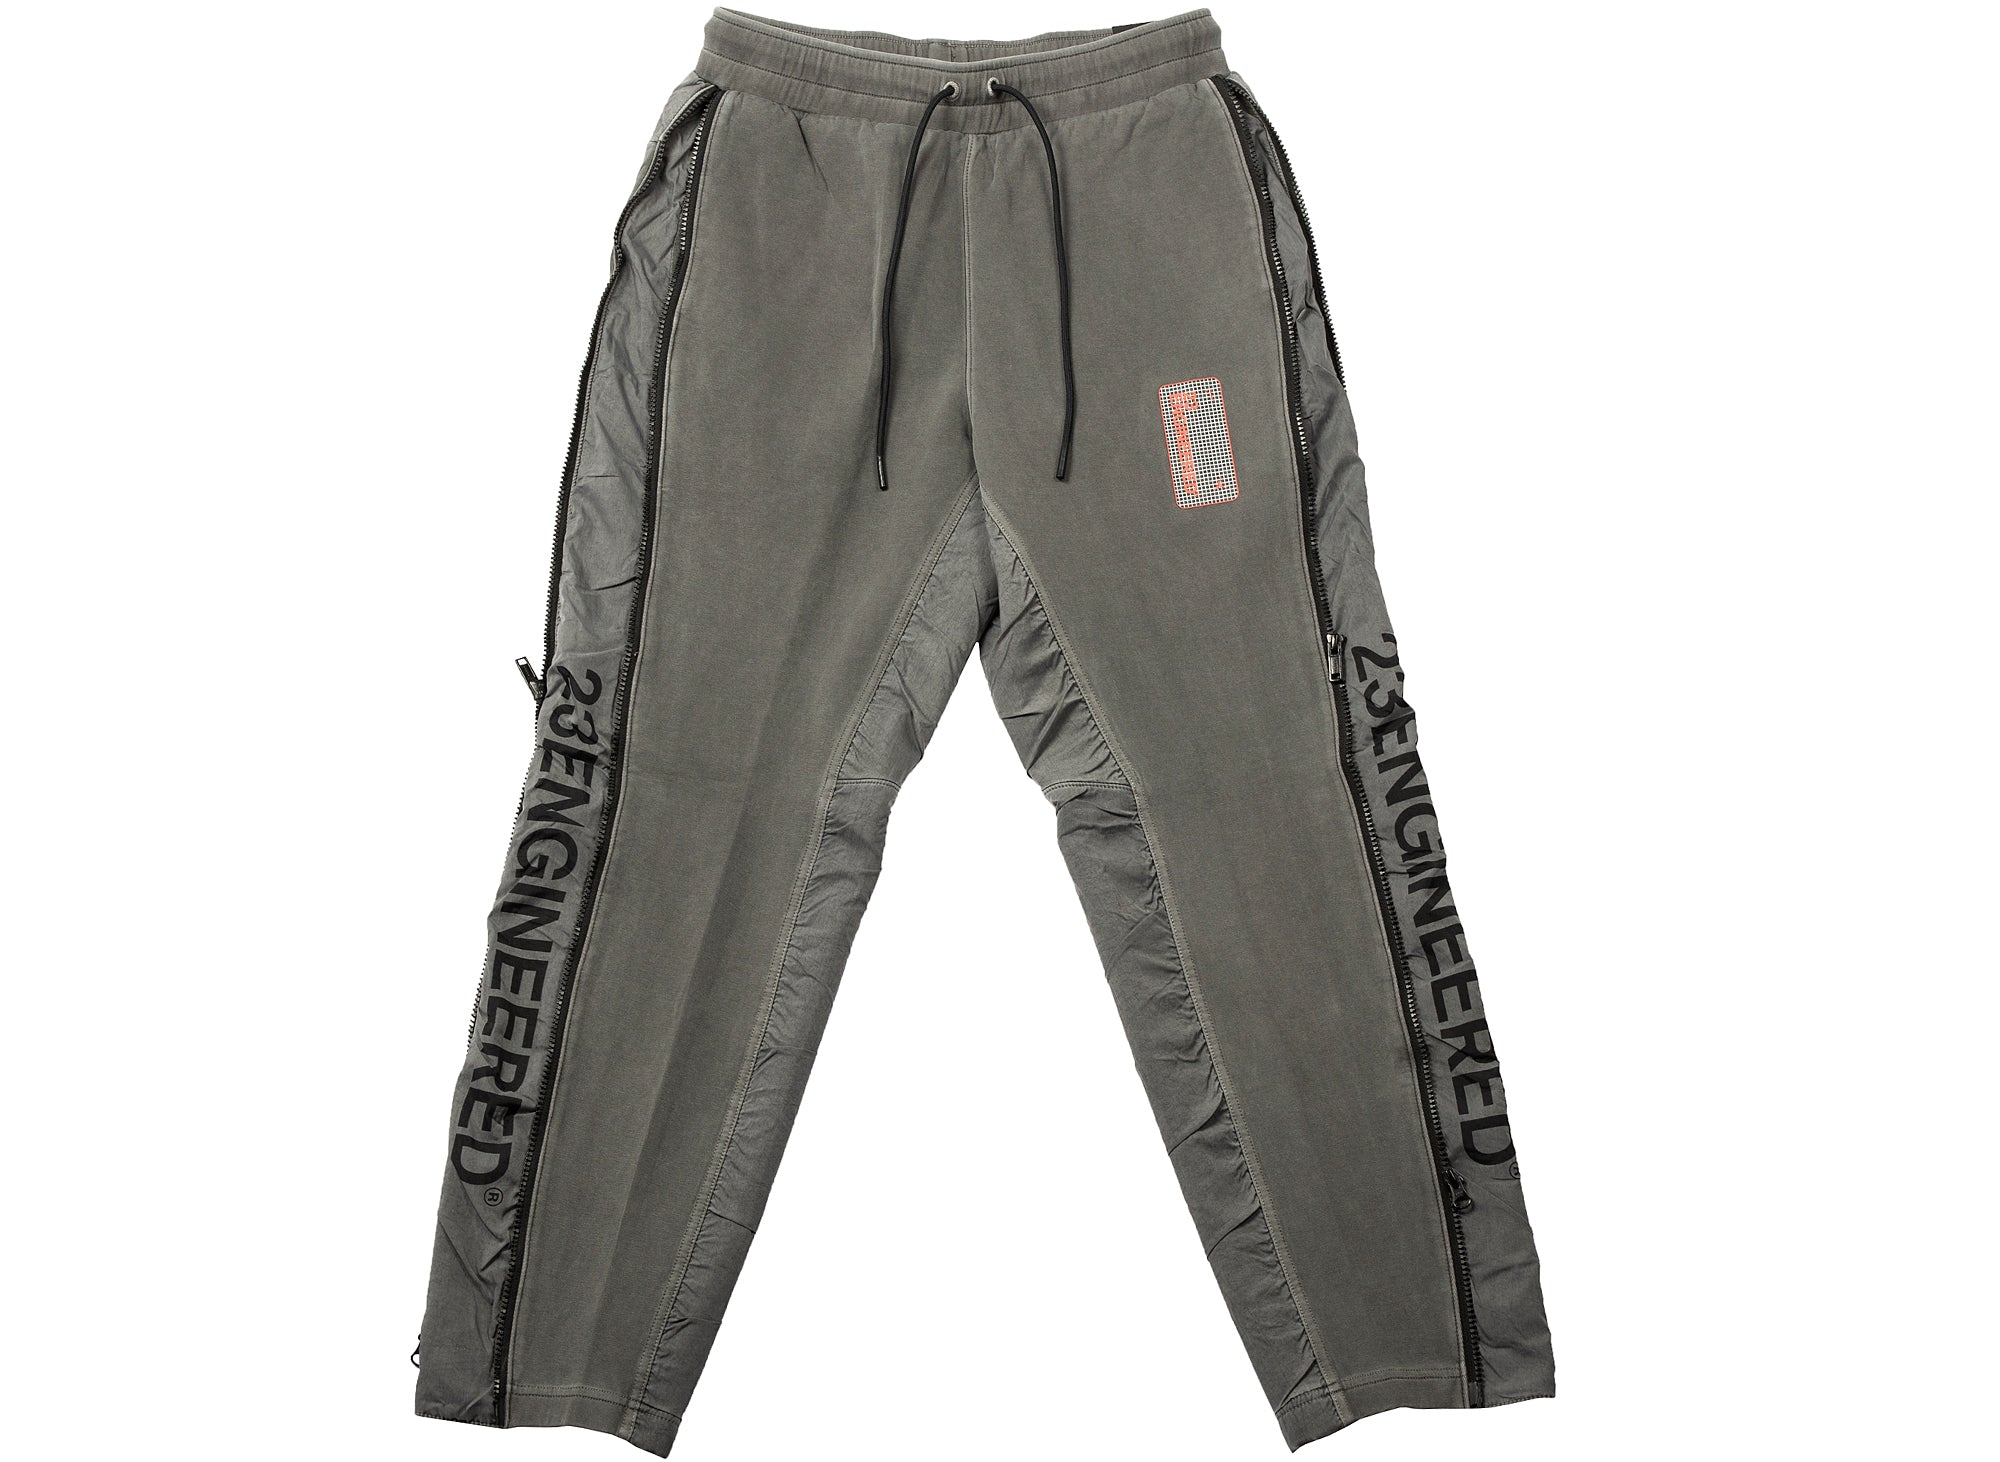 Men's Jordan 23 Engineered Fleece Pants xld